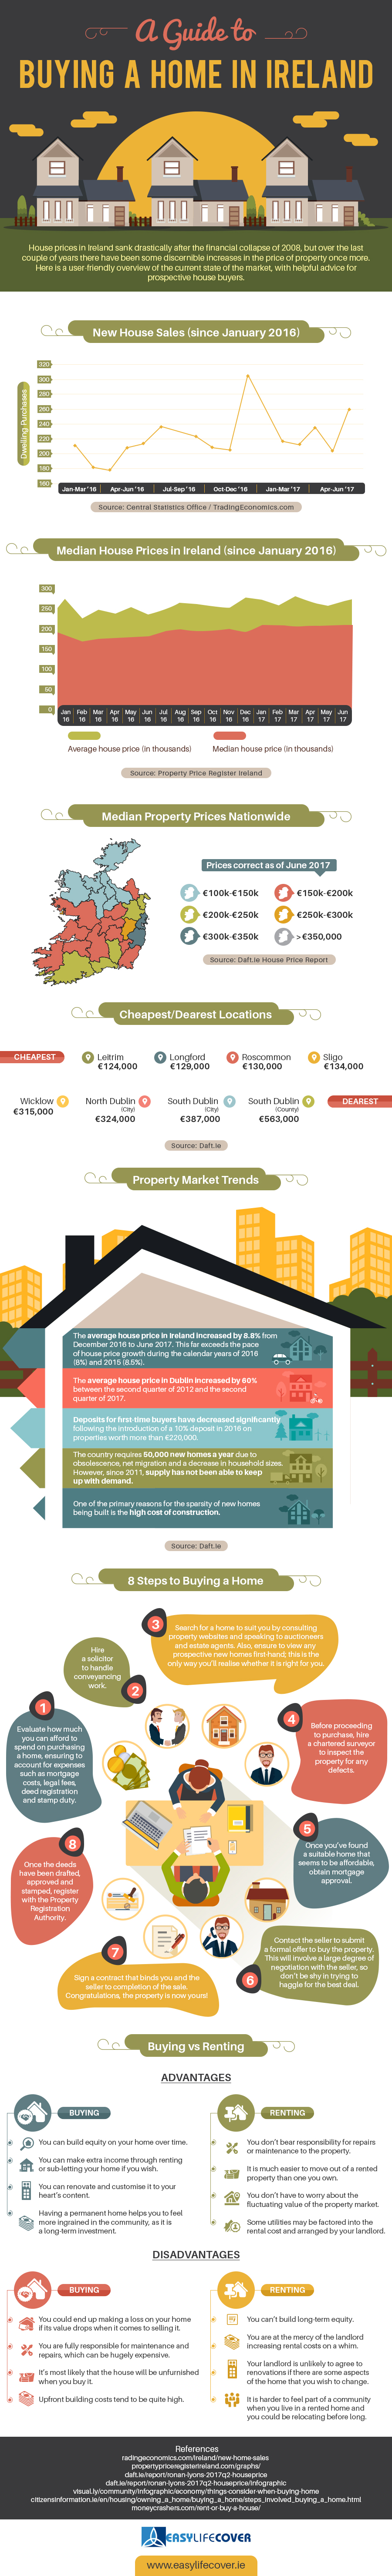 A Guide to Buying a Home in Ireland Infographic